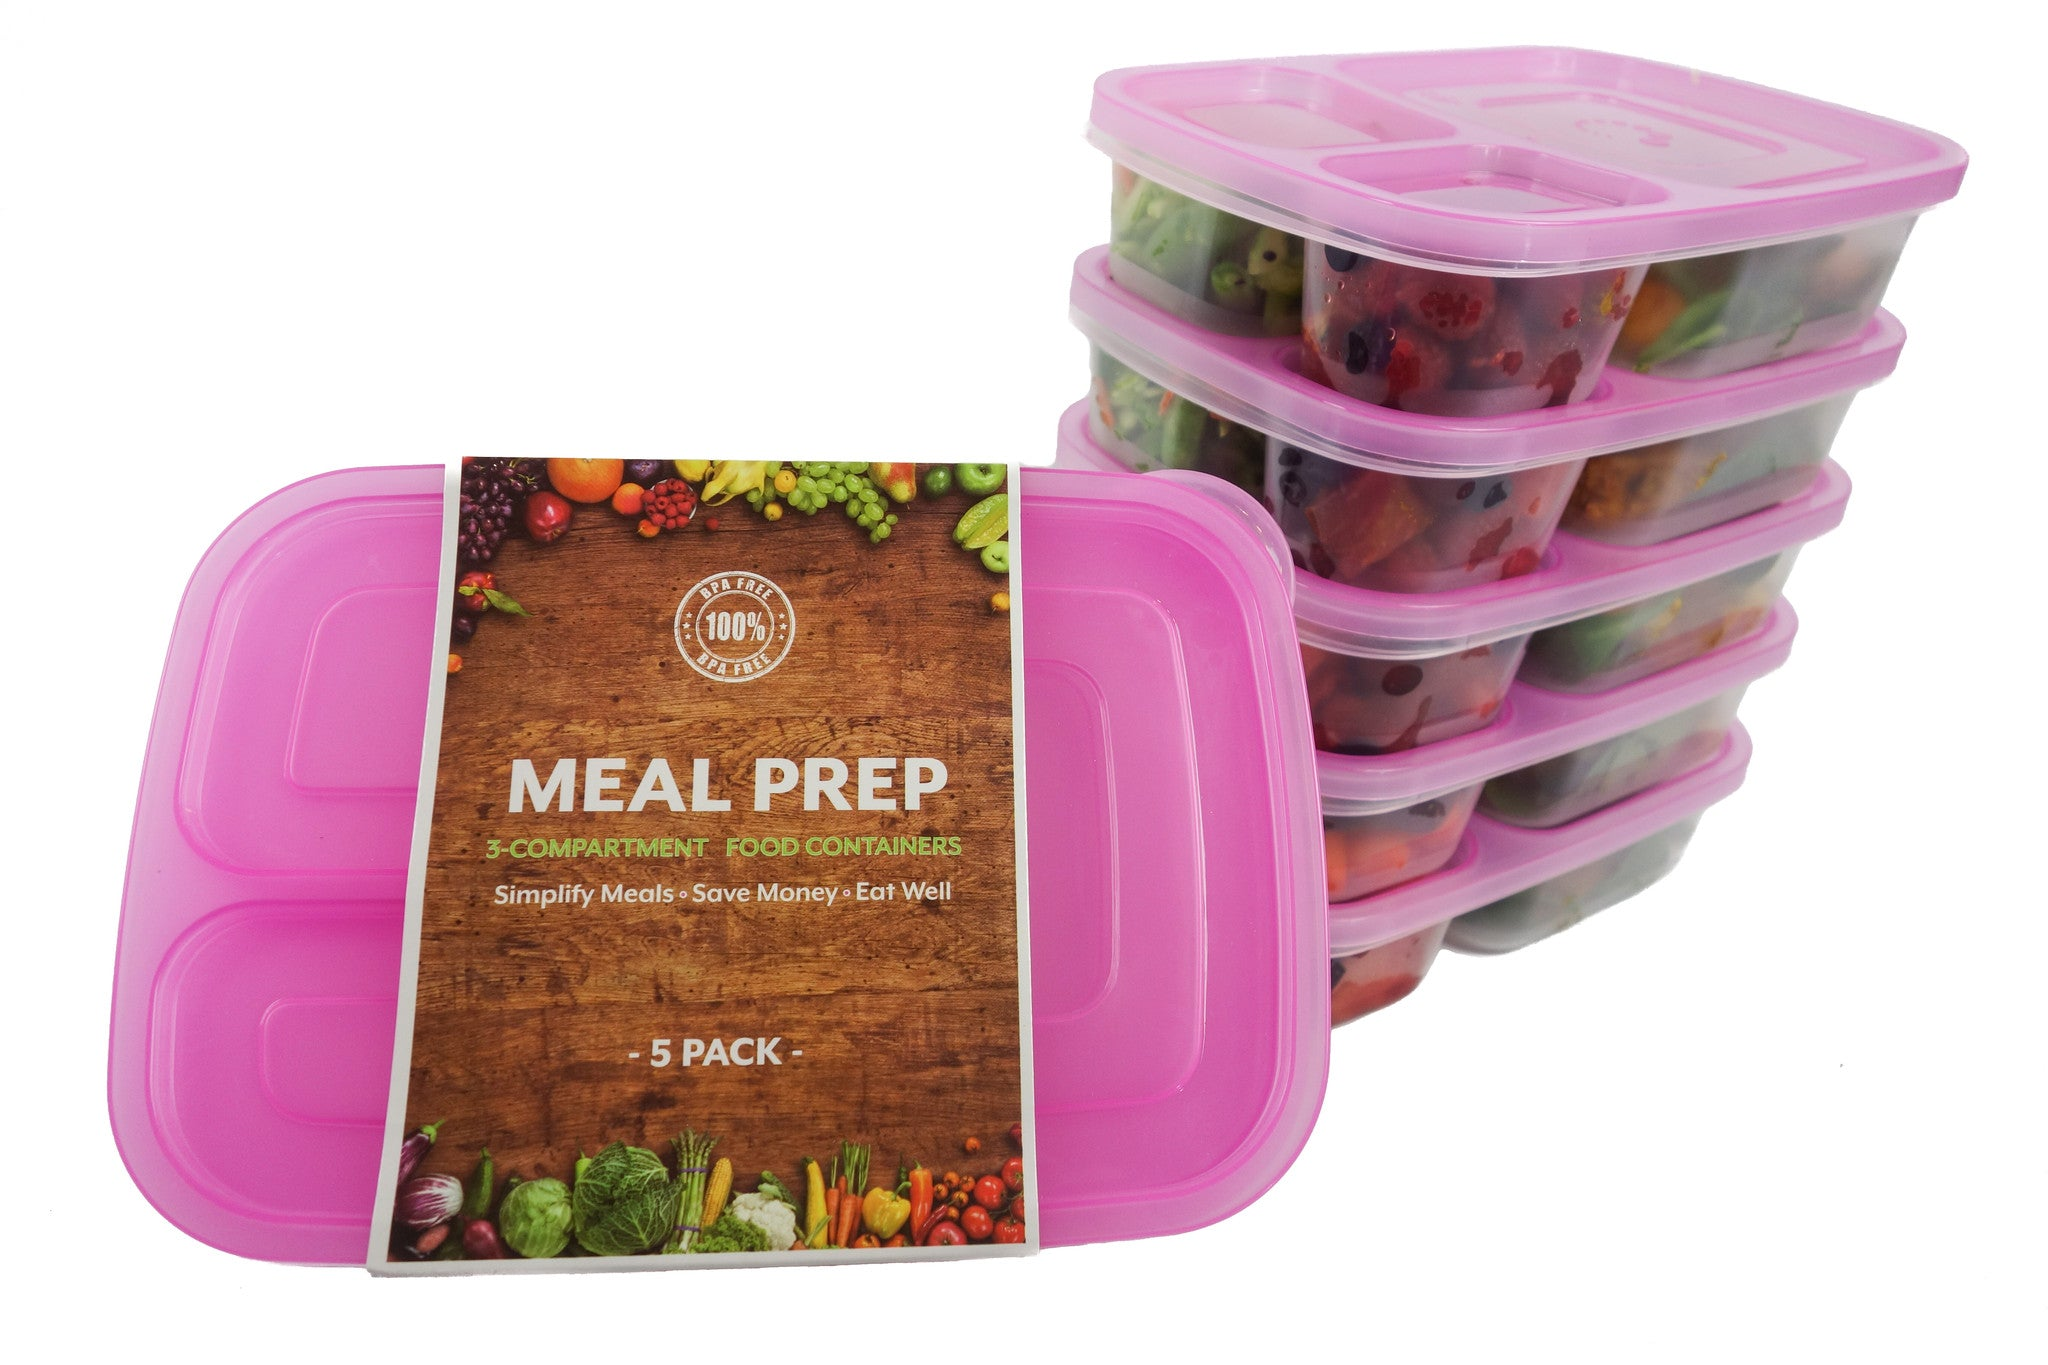 5 Pack BPA Free Food Prep Containers Pink Meal Prep Turning to